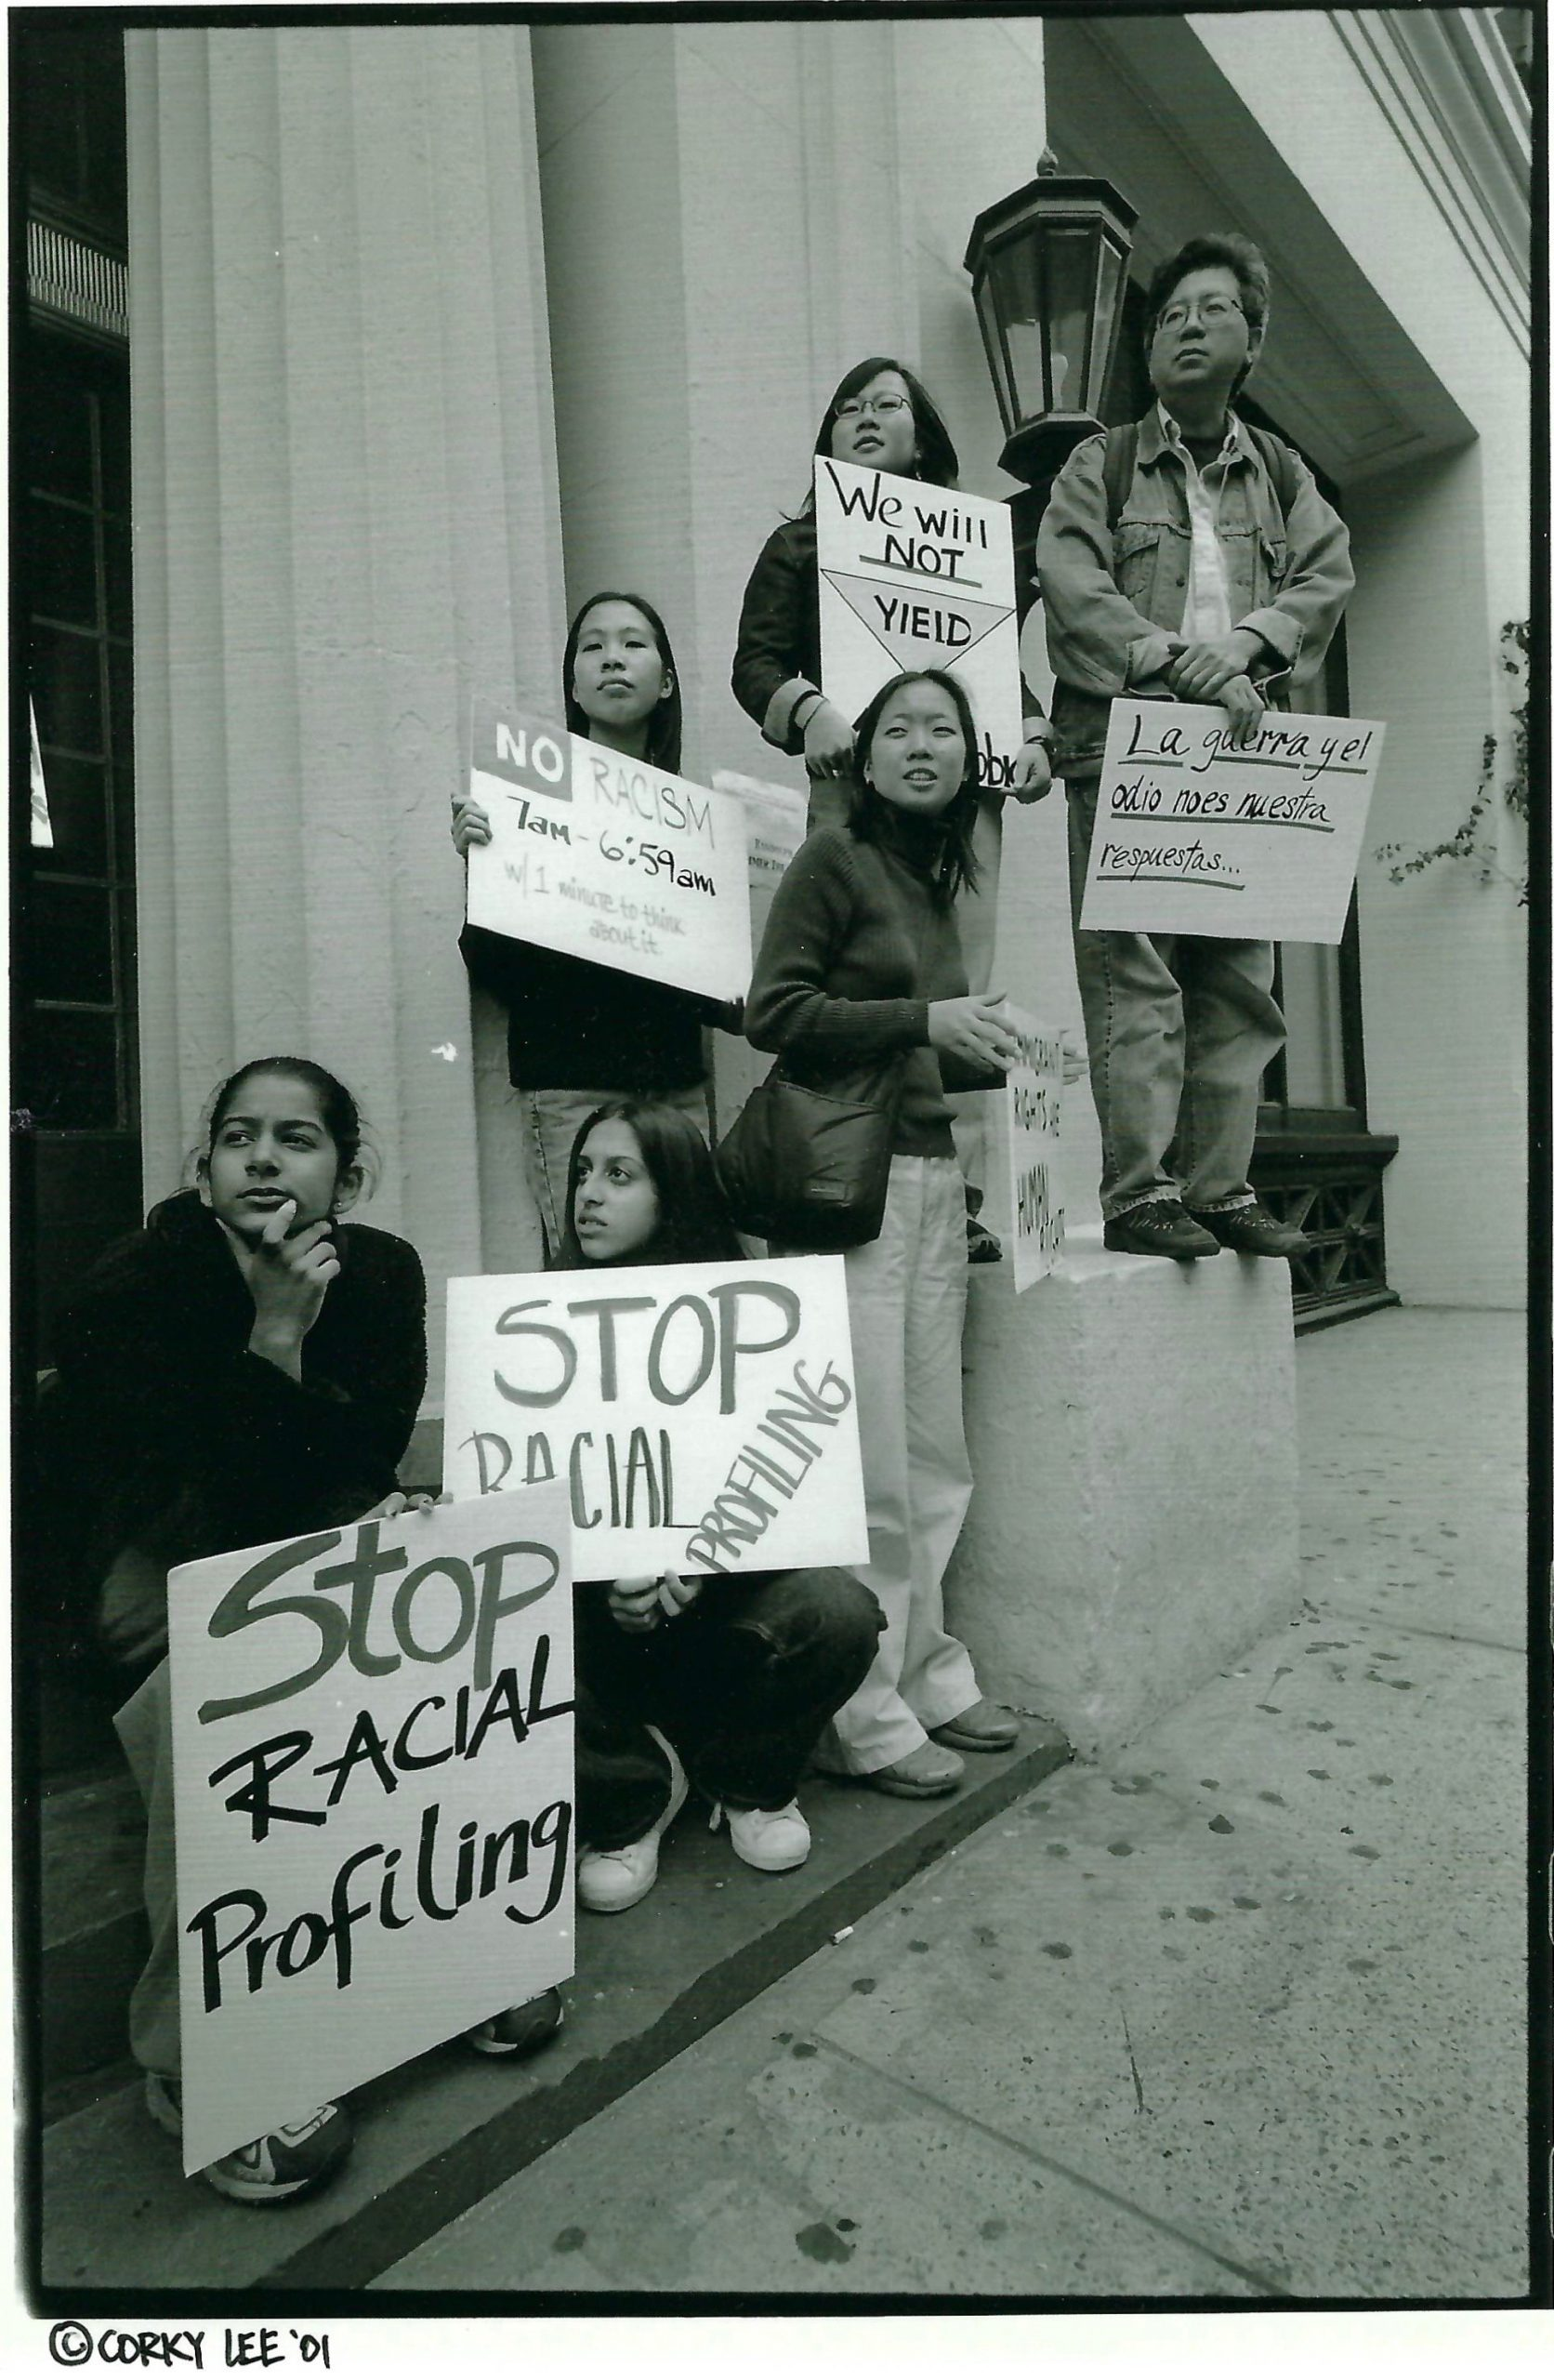 b&w image of Asian American protesters holding signs